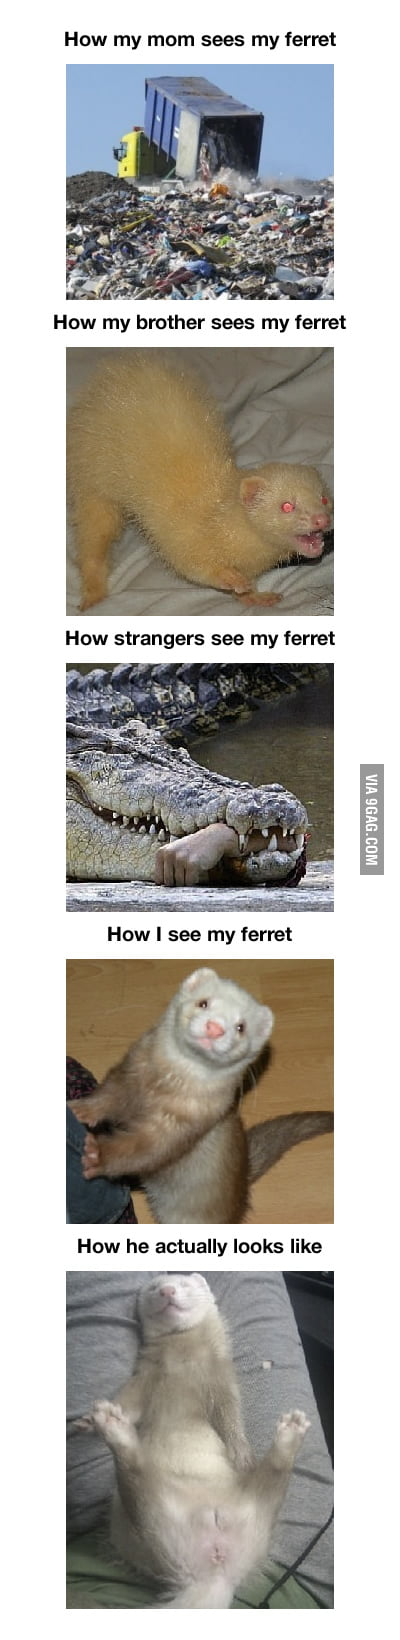 Ferret, the truth about them